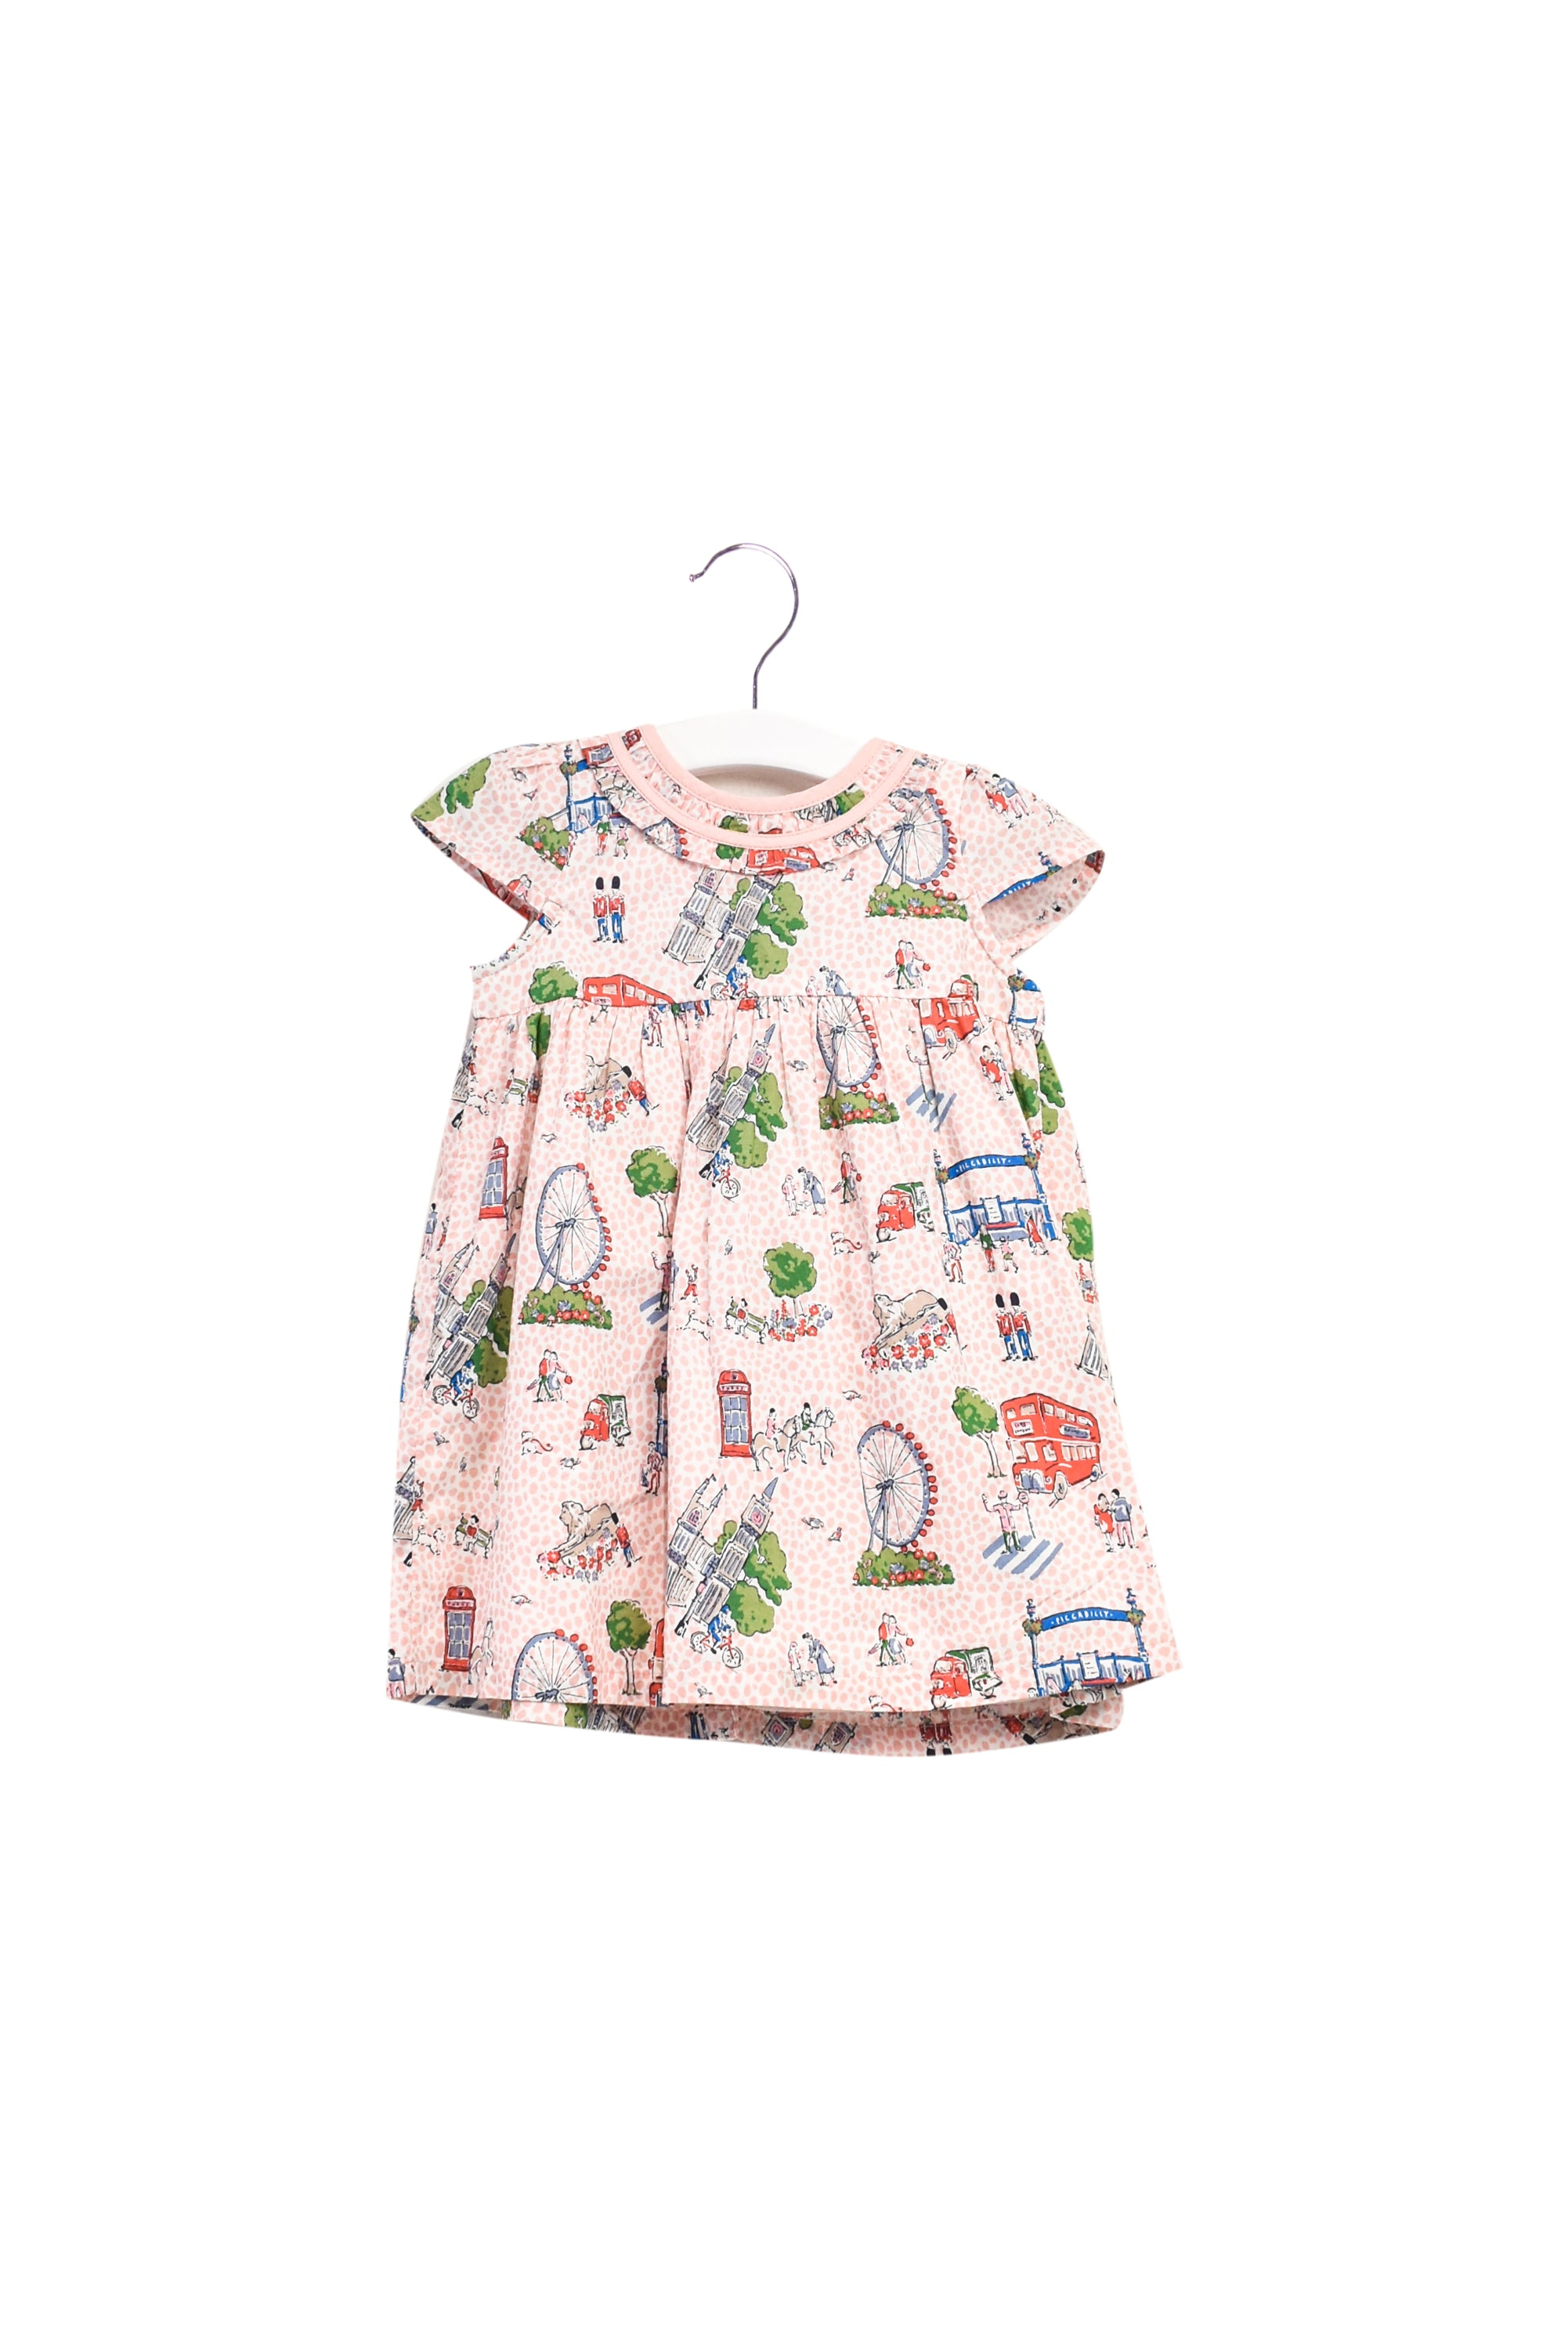 10023634 Cath Kidston Kids~Dress and Bloomer 6-12M at Retykle